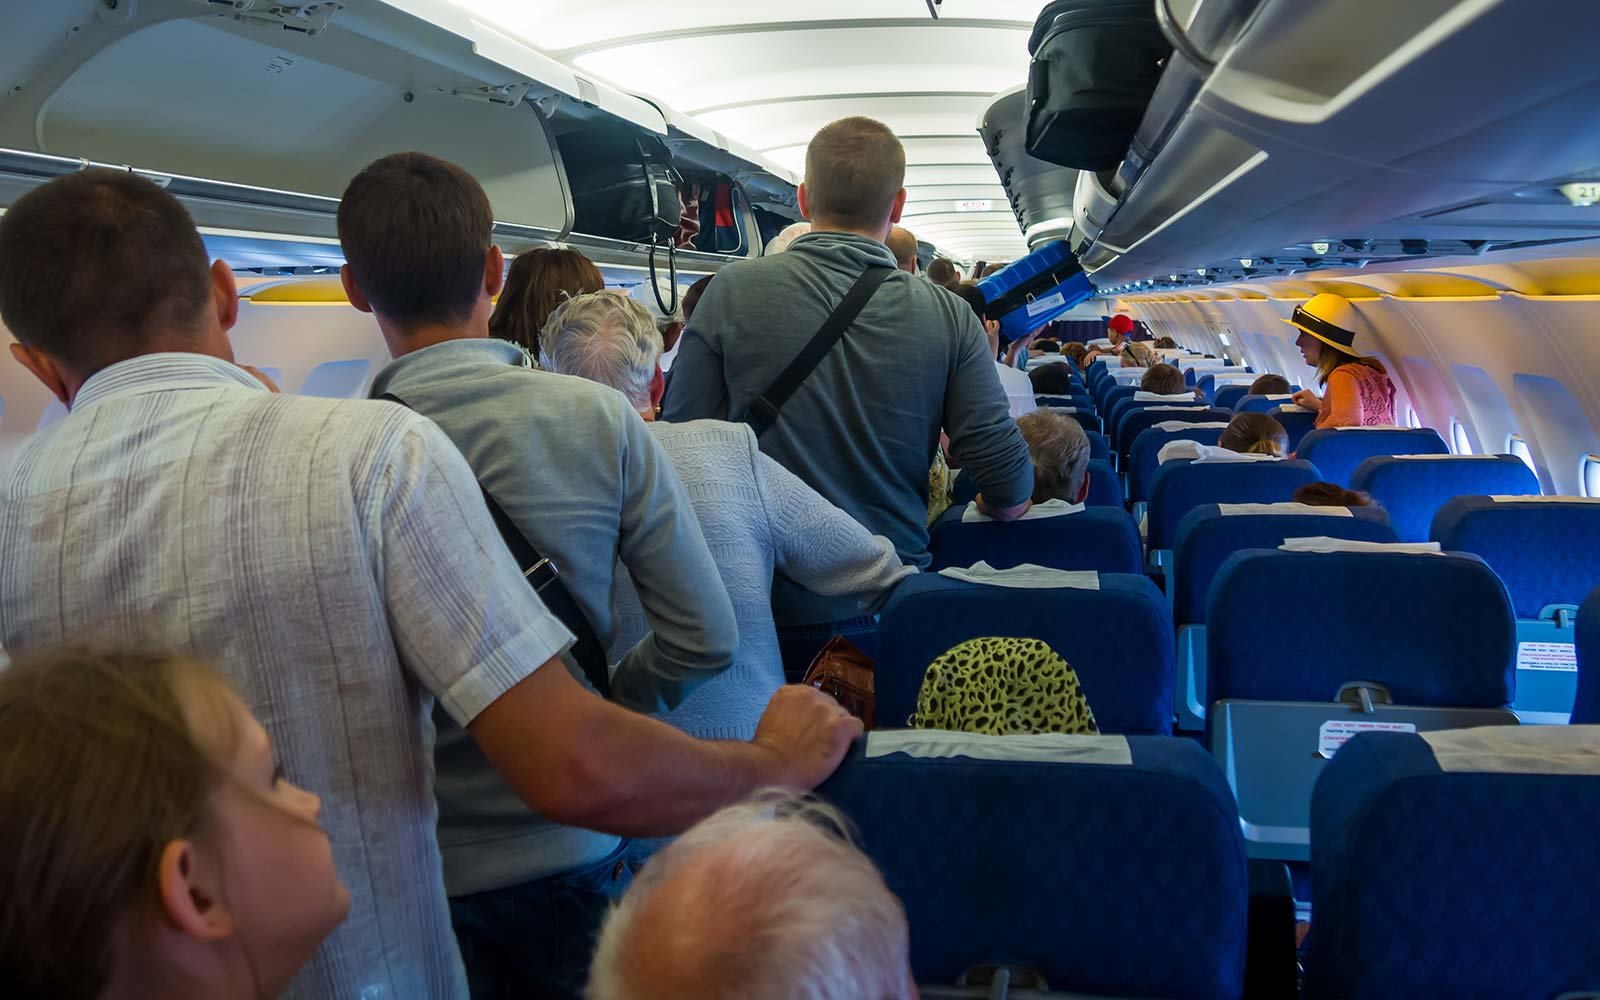 Basic Economy Is a Success for Airlines, Even If Travelers Don't Buy the Tickets